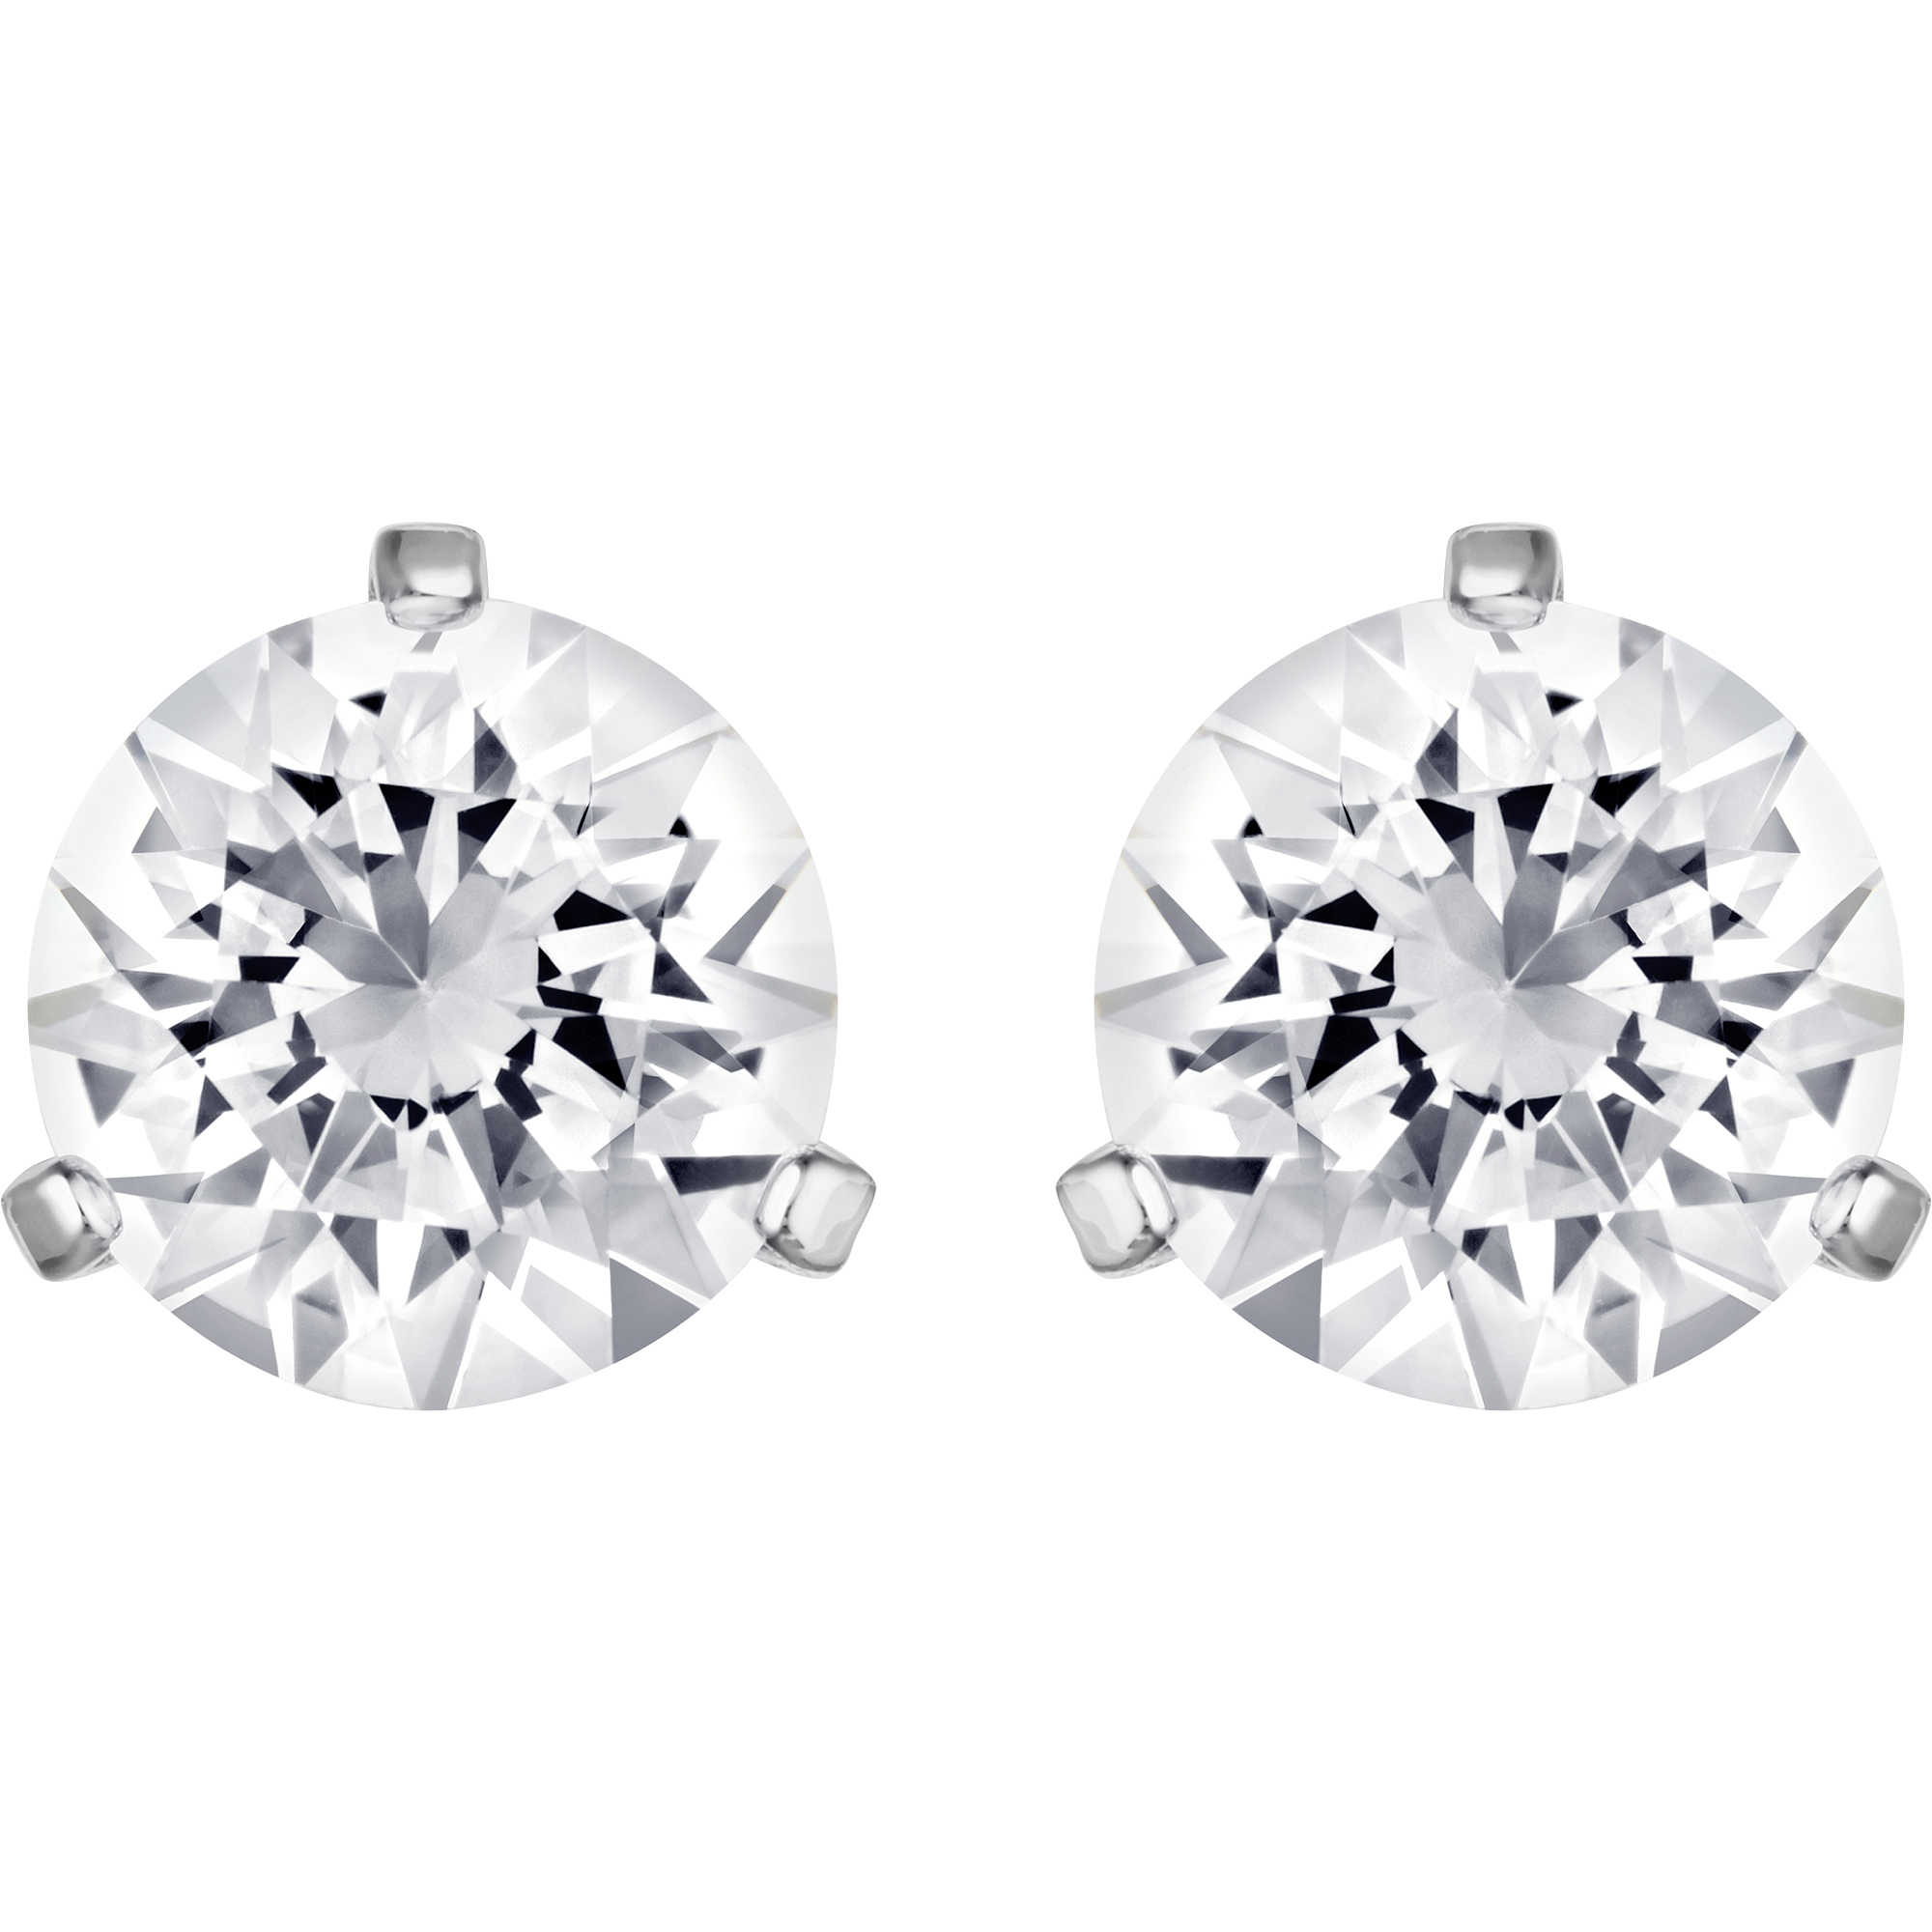 earrings color src we prod fancy a round diamond sell select dia solitaire jewel s jewelwesell p yg cut net metal natural ladies